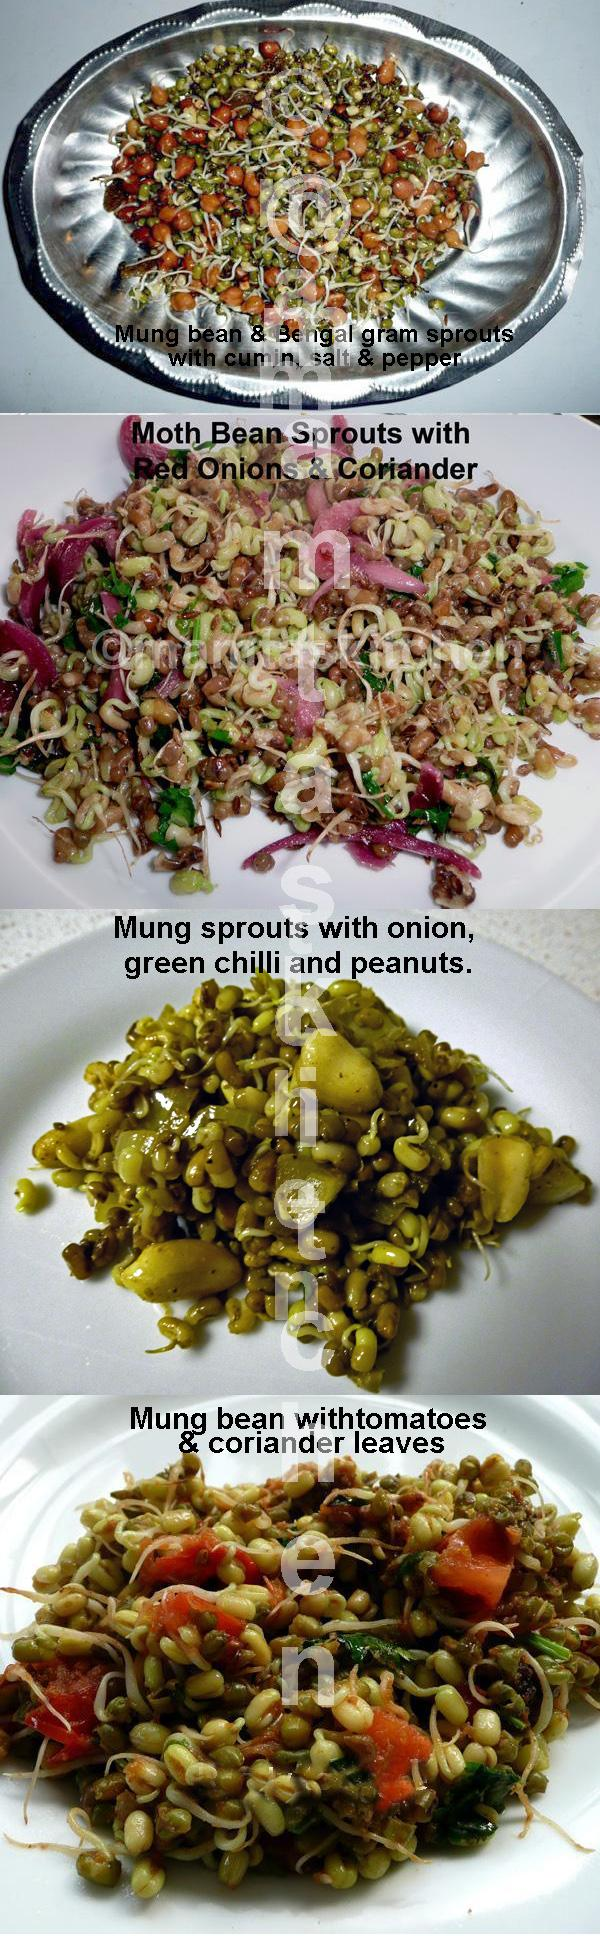 Sprouted Bengal Gram or Other Beans/Peas Stir-Fried